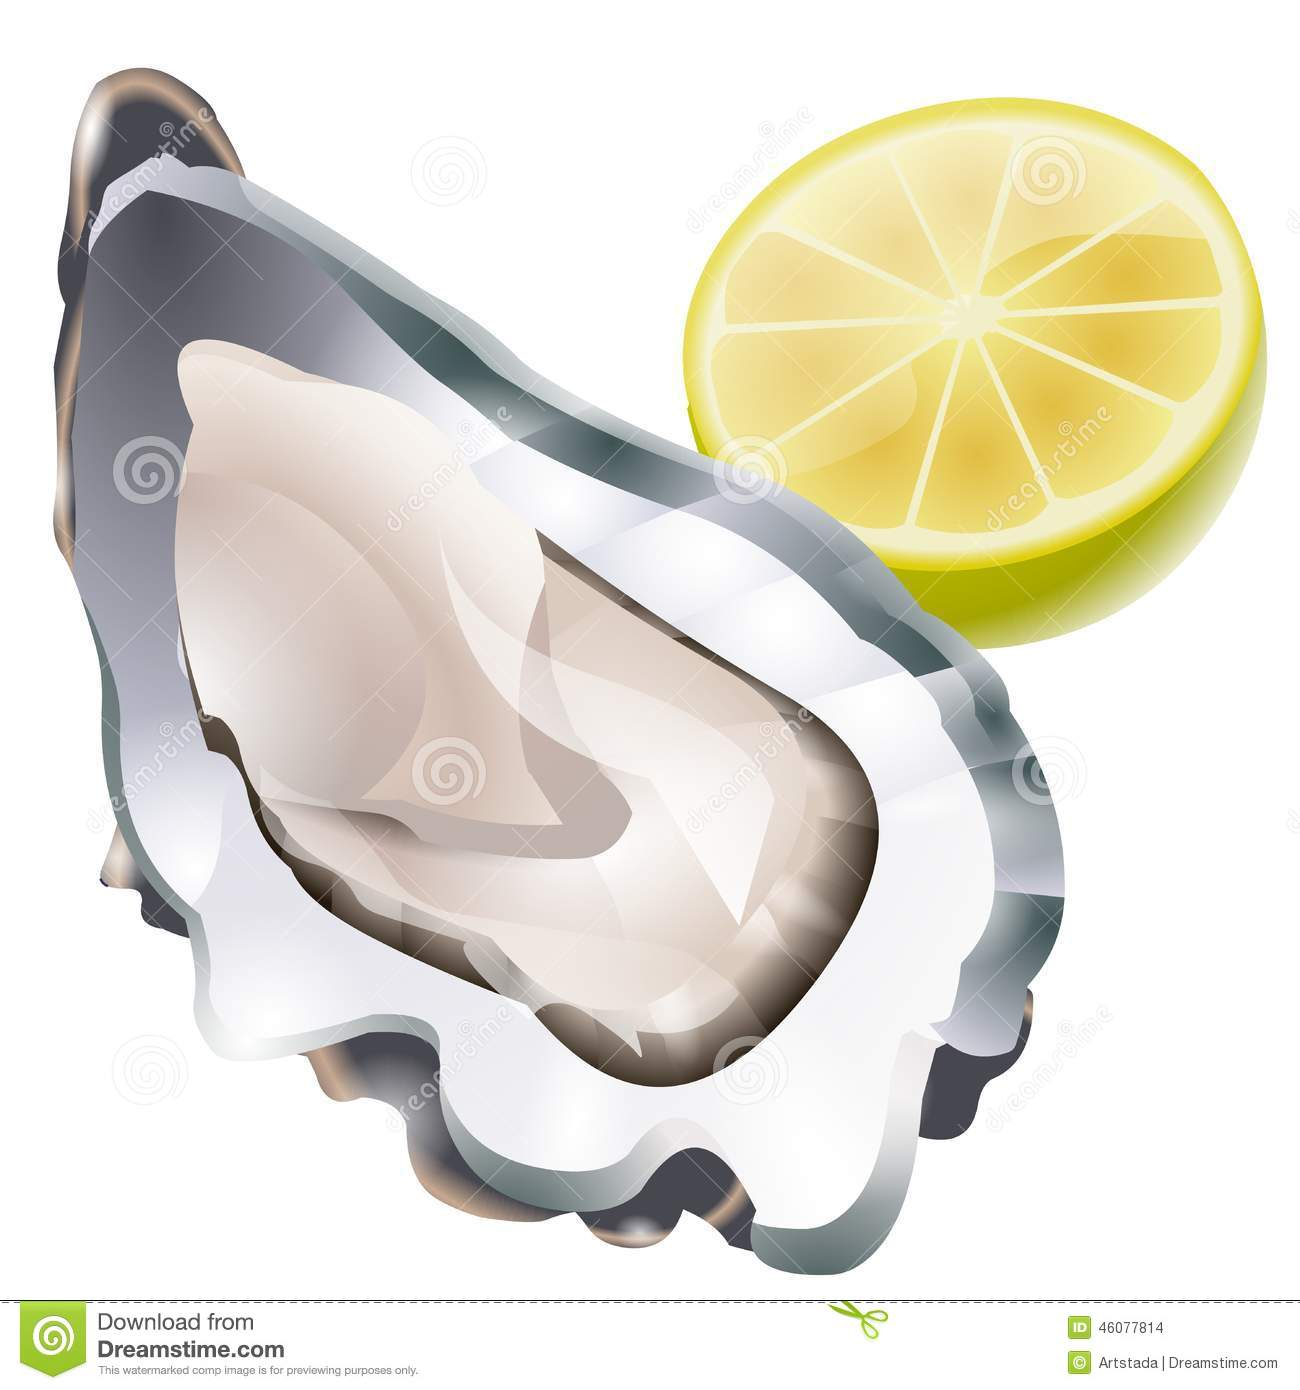 Oyster clipart bivalve. Raw stock illustrations vectors black and white stock